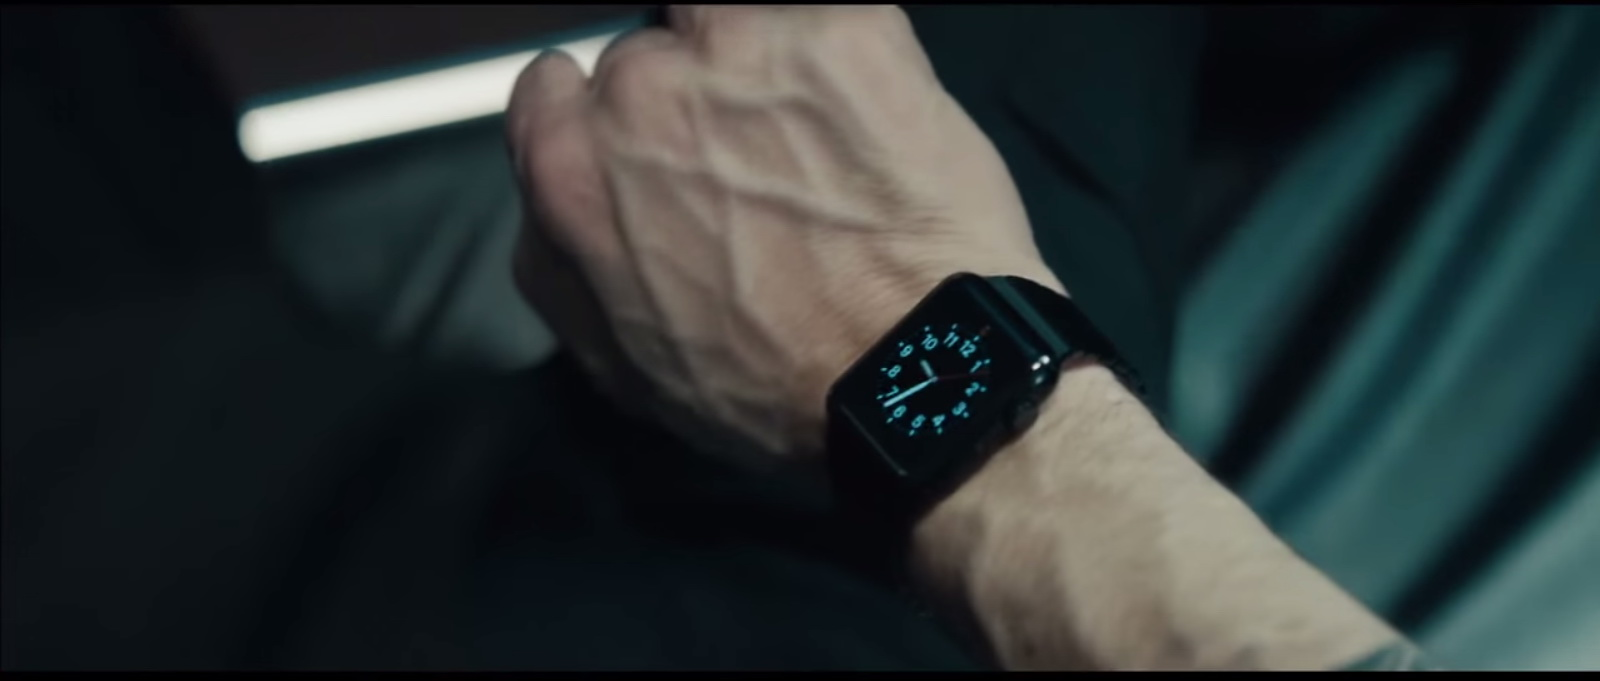 Apple Watch - Eminem - Phenomenal - Official Music Video Product Placement